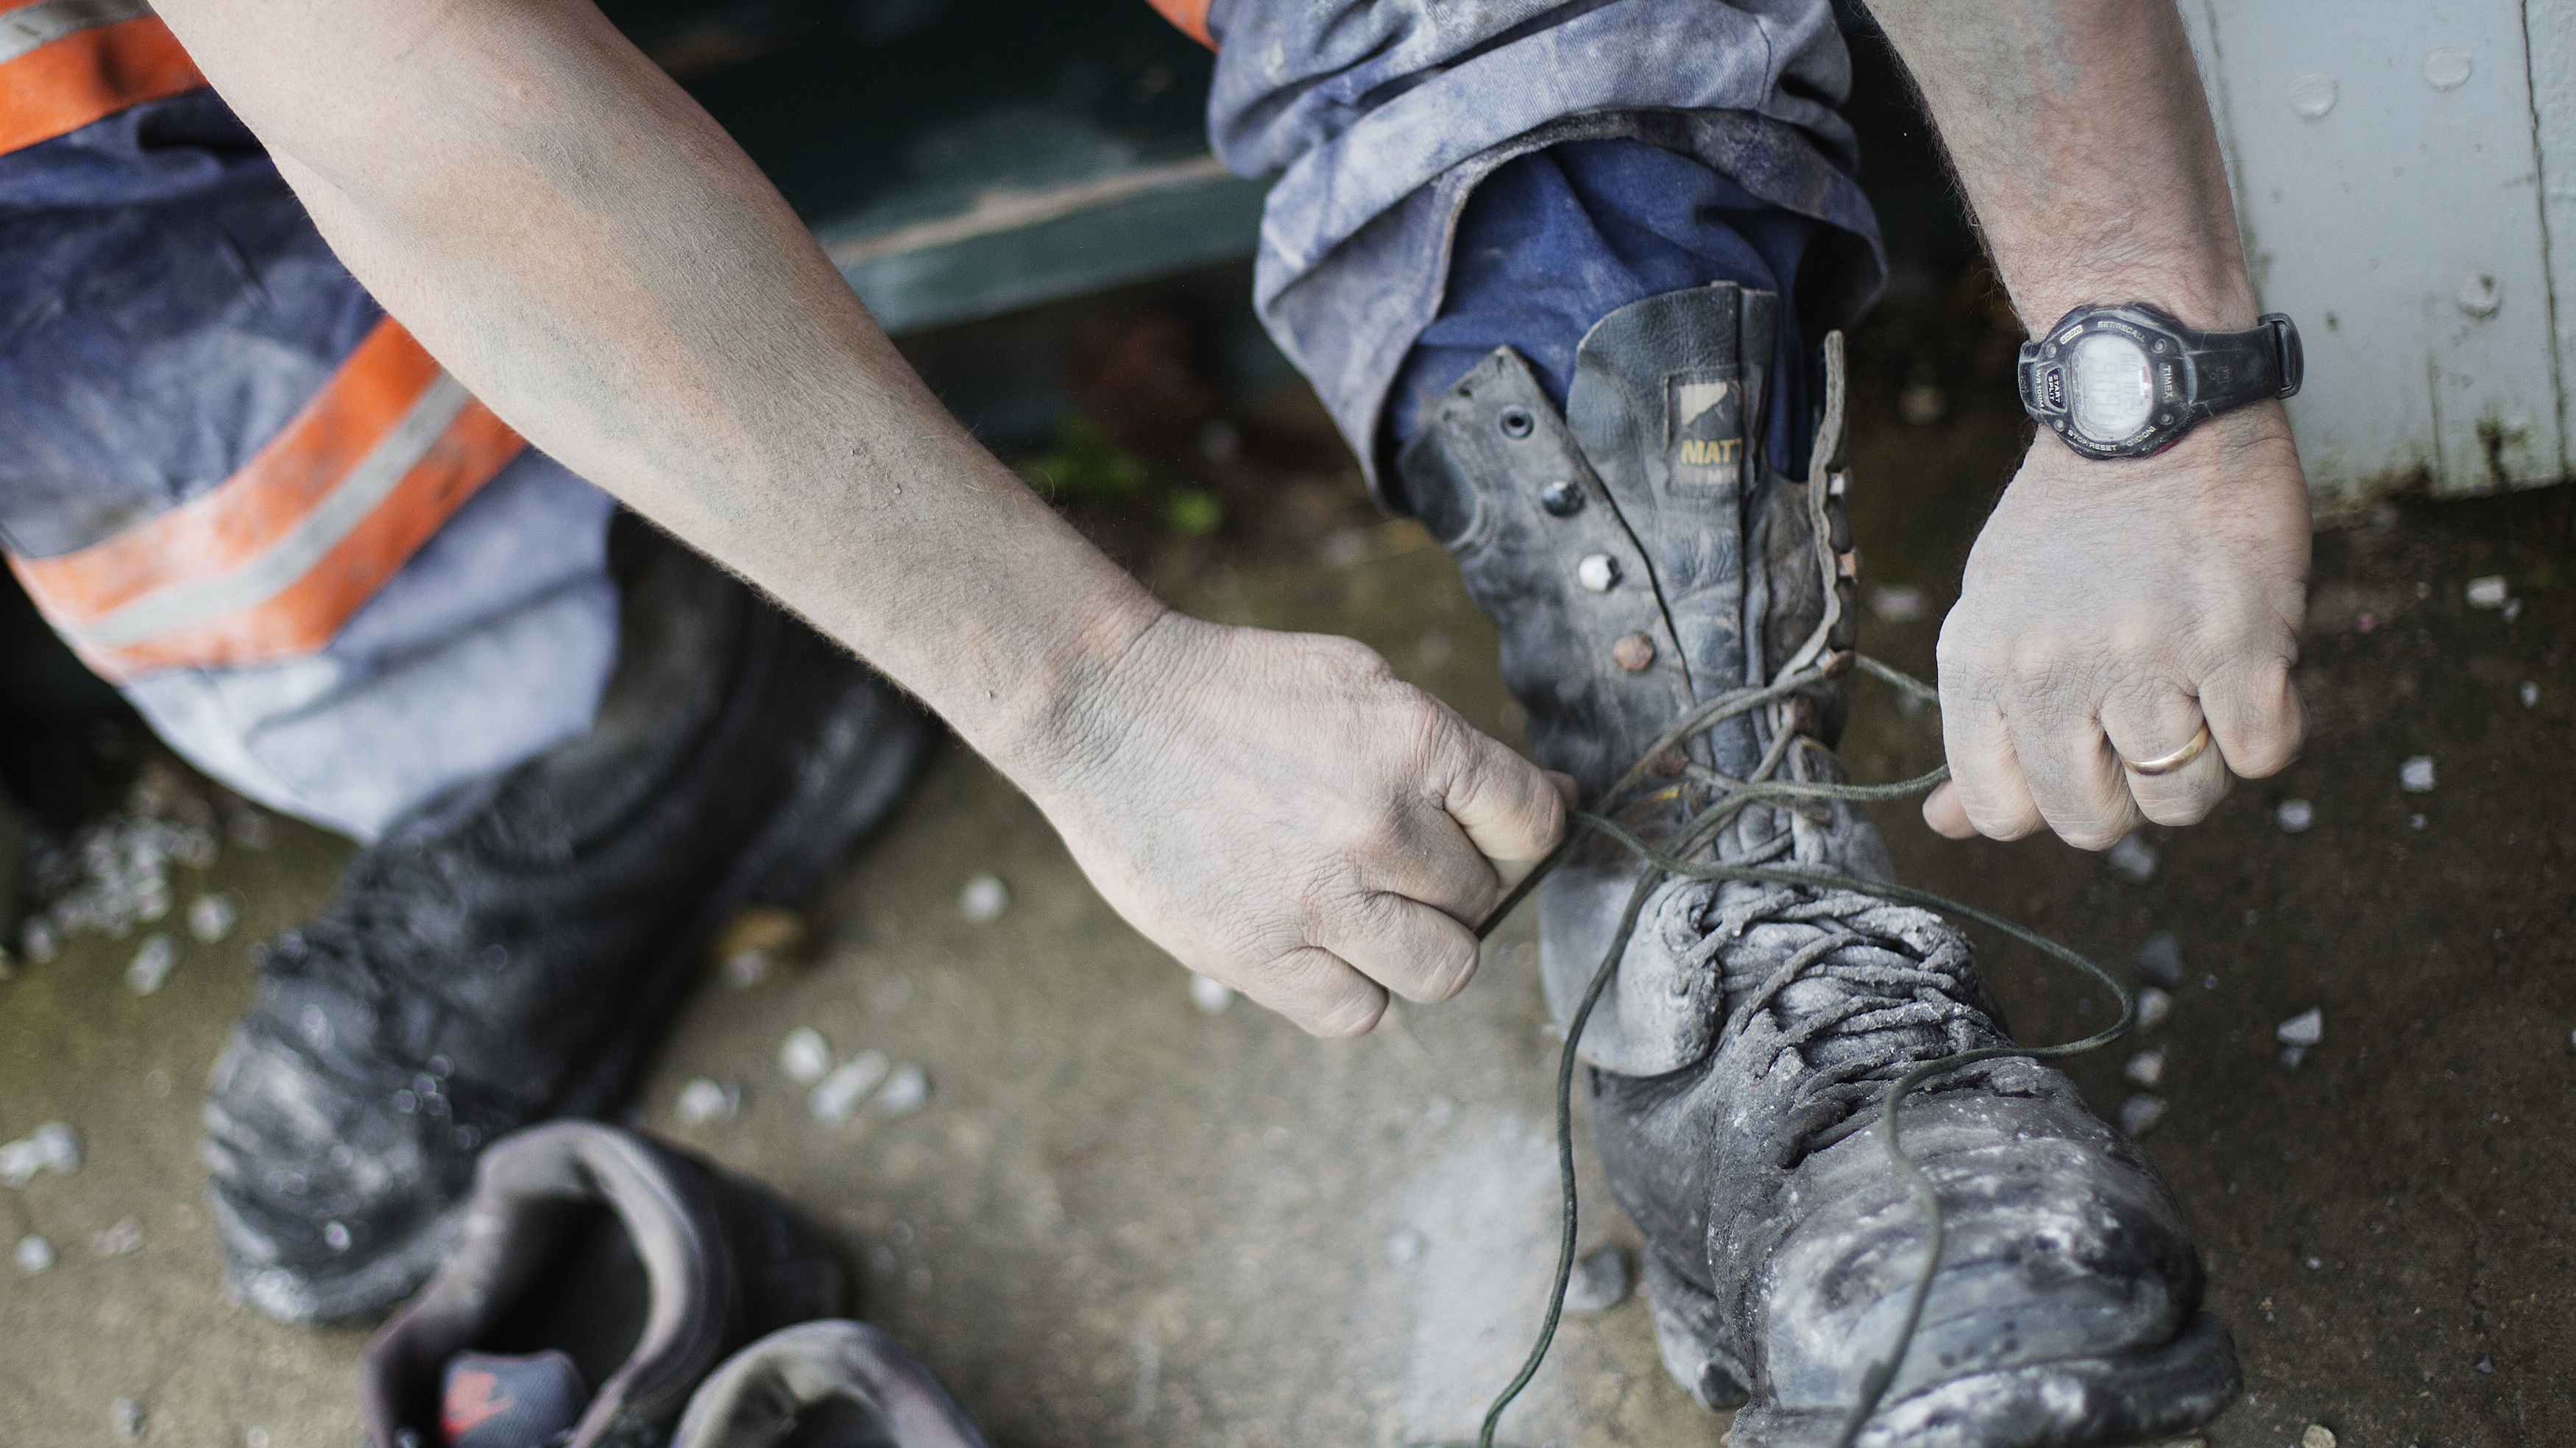 A Kentucky coal miner removes boots covered in toxic coal dust.